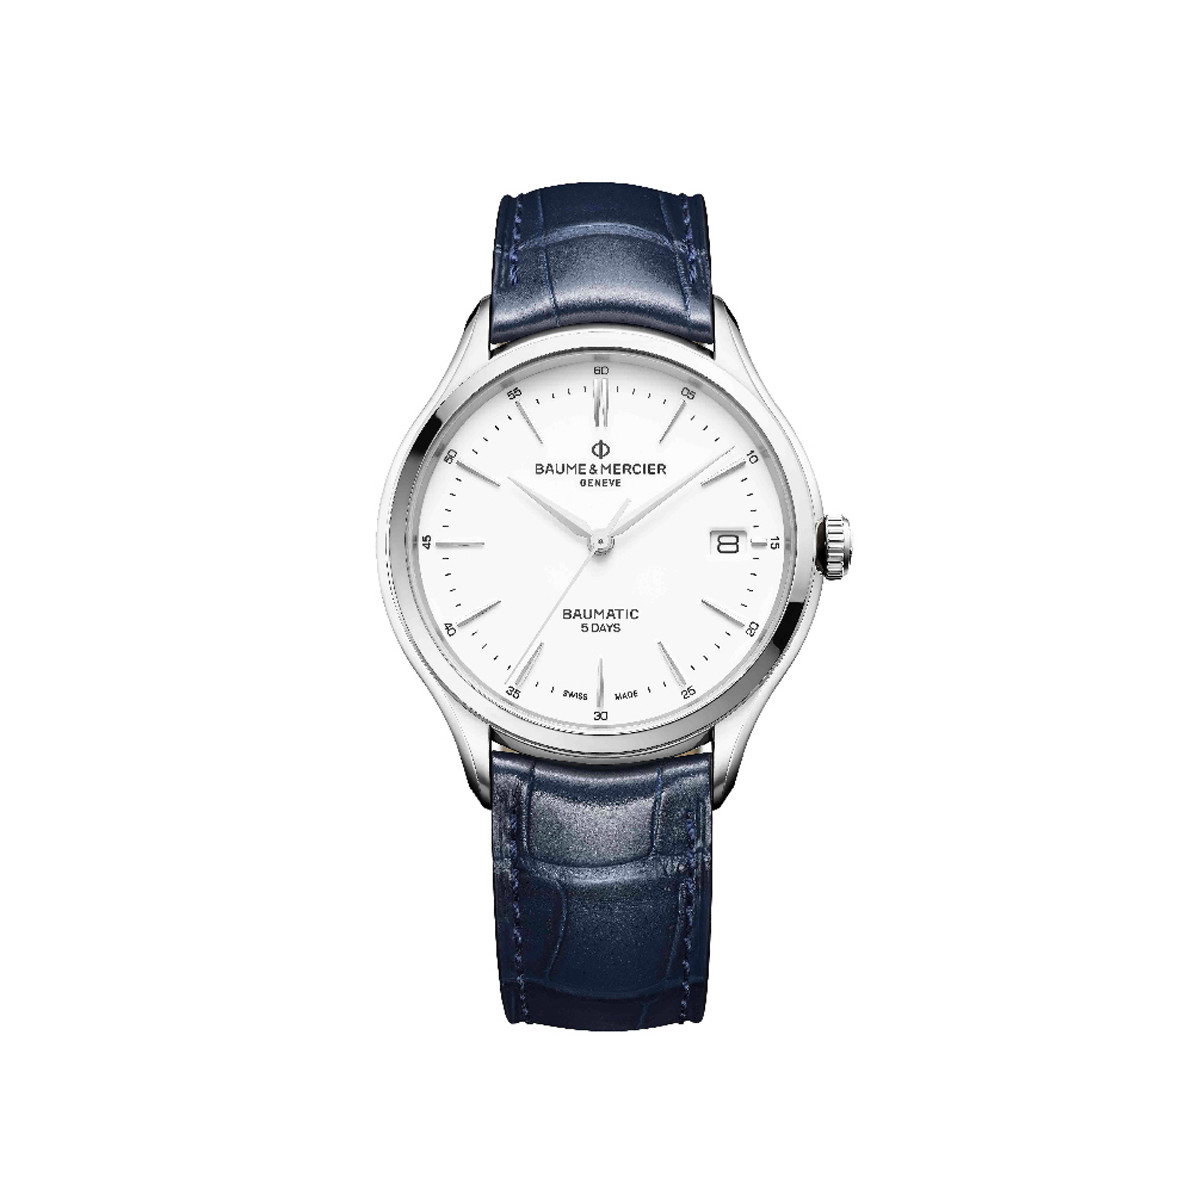 BAUME & MERCIER CLIFTON BAUMATIC WATCH